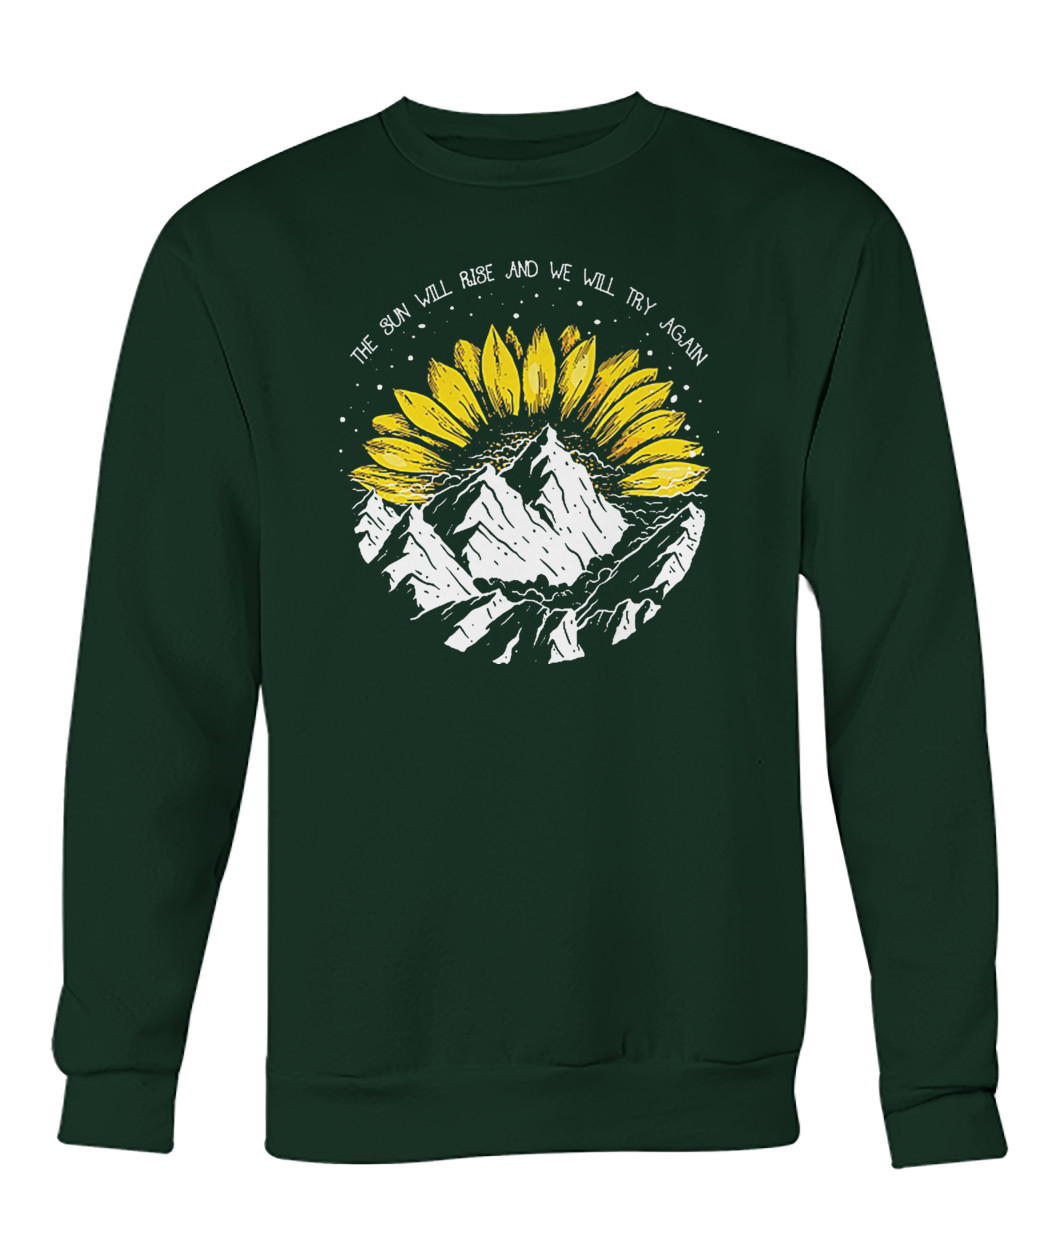 The sun will rise and we will try again sweatshirt